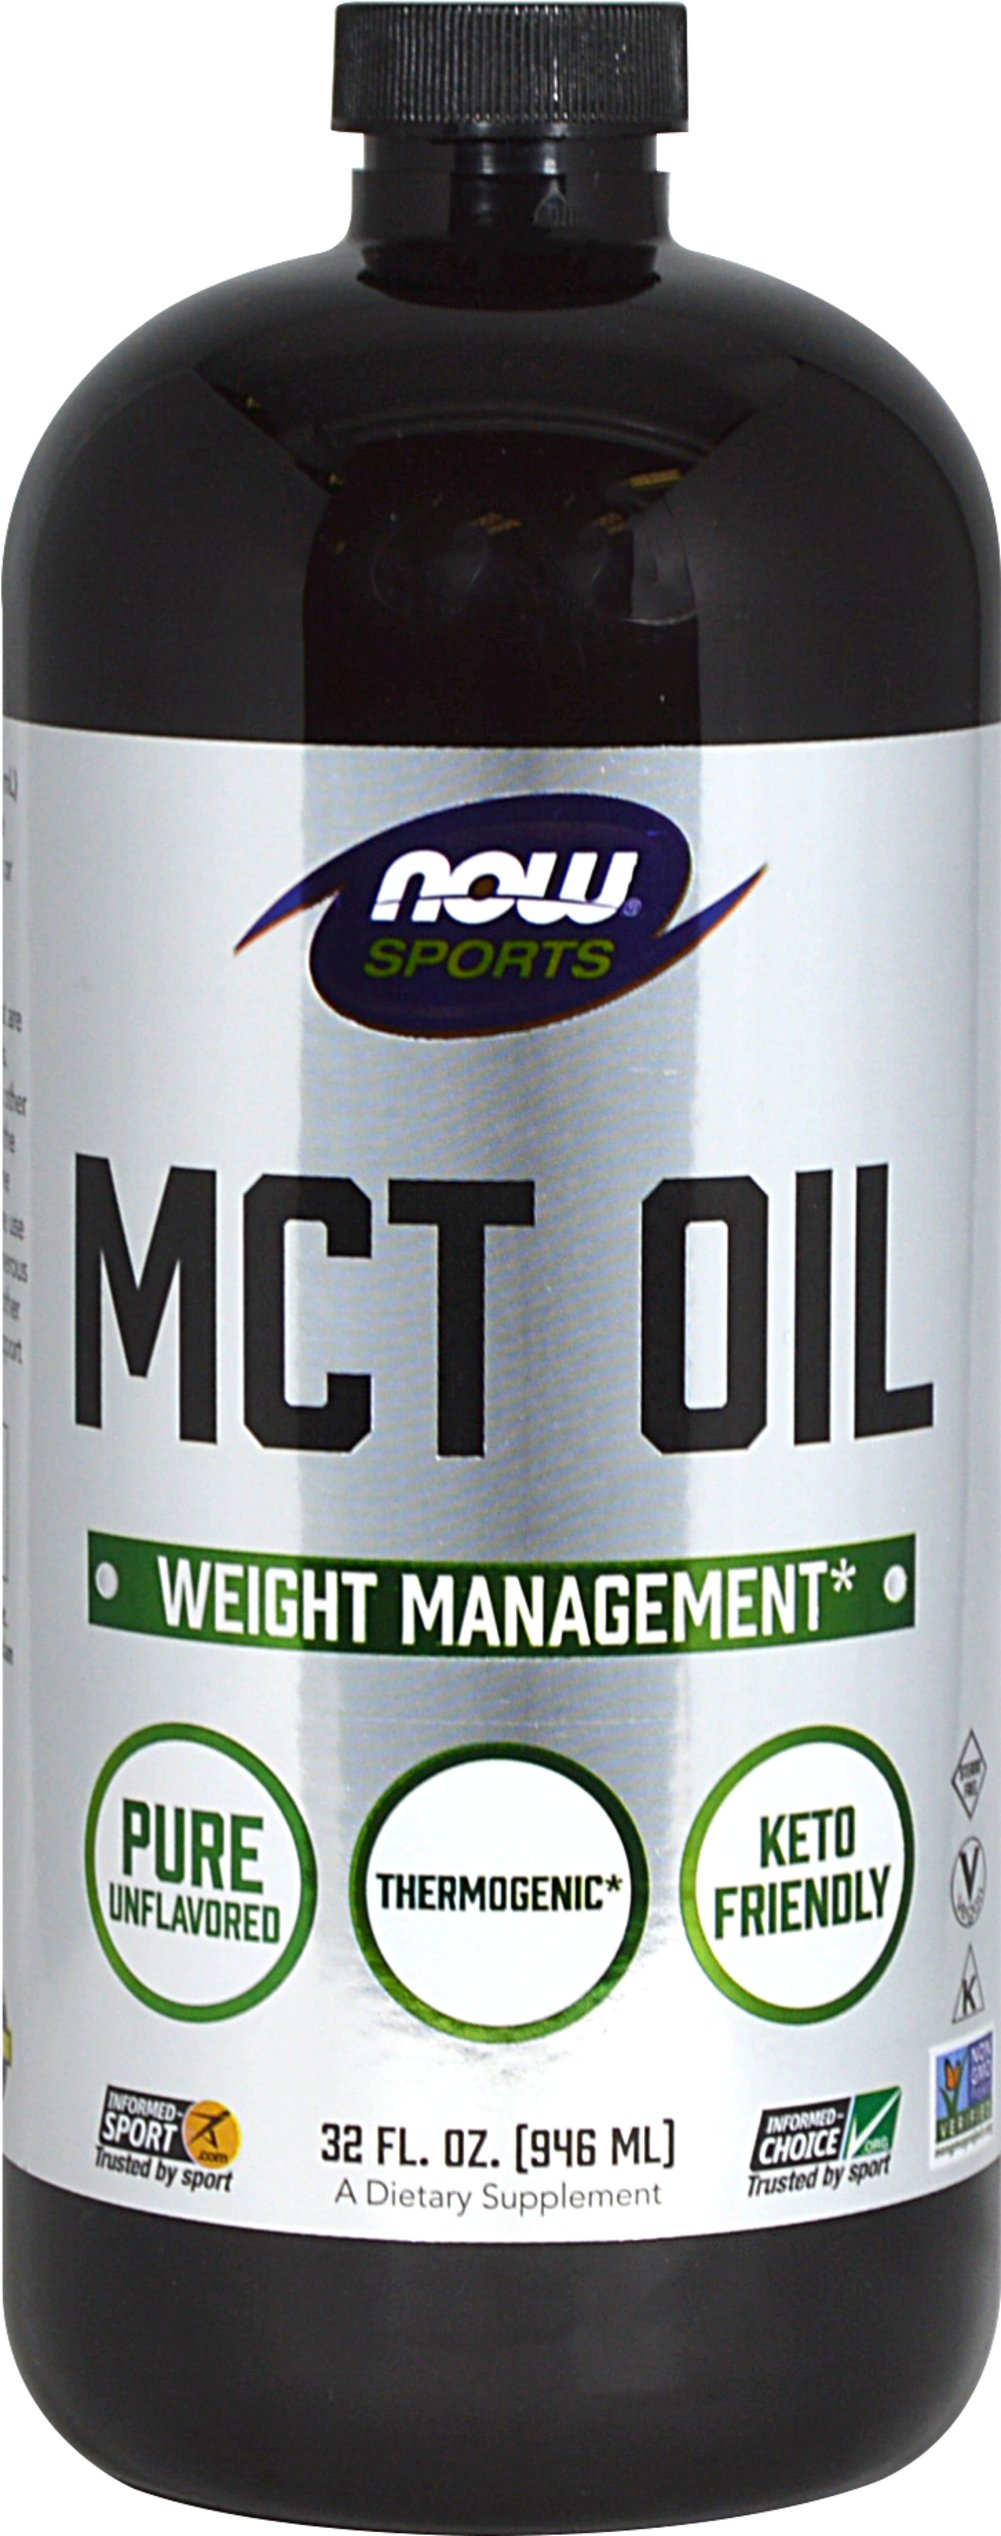 MCT Oil From the Manufacturer's Label:<br /><br />Medium Chain Triglycerides (MCT's) are fats that are naturally found in coconut and palm kernel oil.  MCT's are more easily and rapidly digested than other types of fats, as they require lower amounts of enzymes and bile acids for intestinal absorption.<br /><br />Manufactured by NOW® Foods. 32 fl oz Liquid